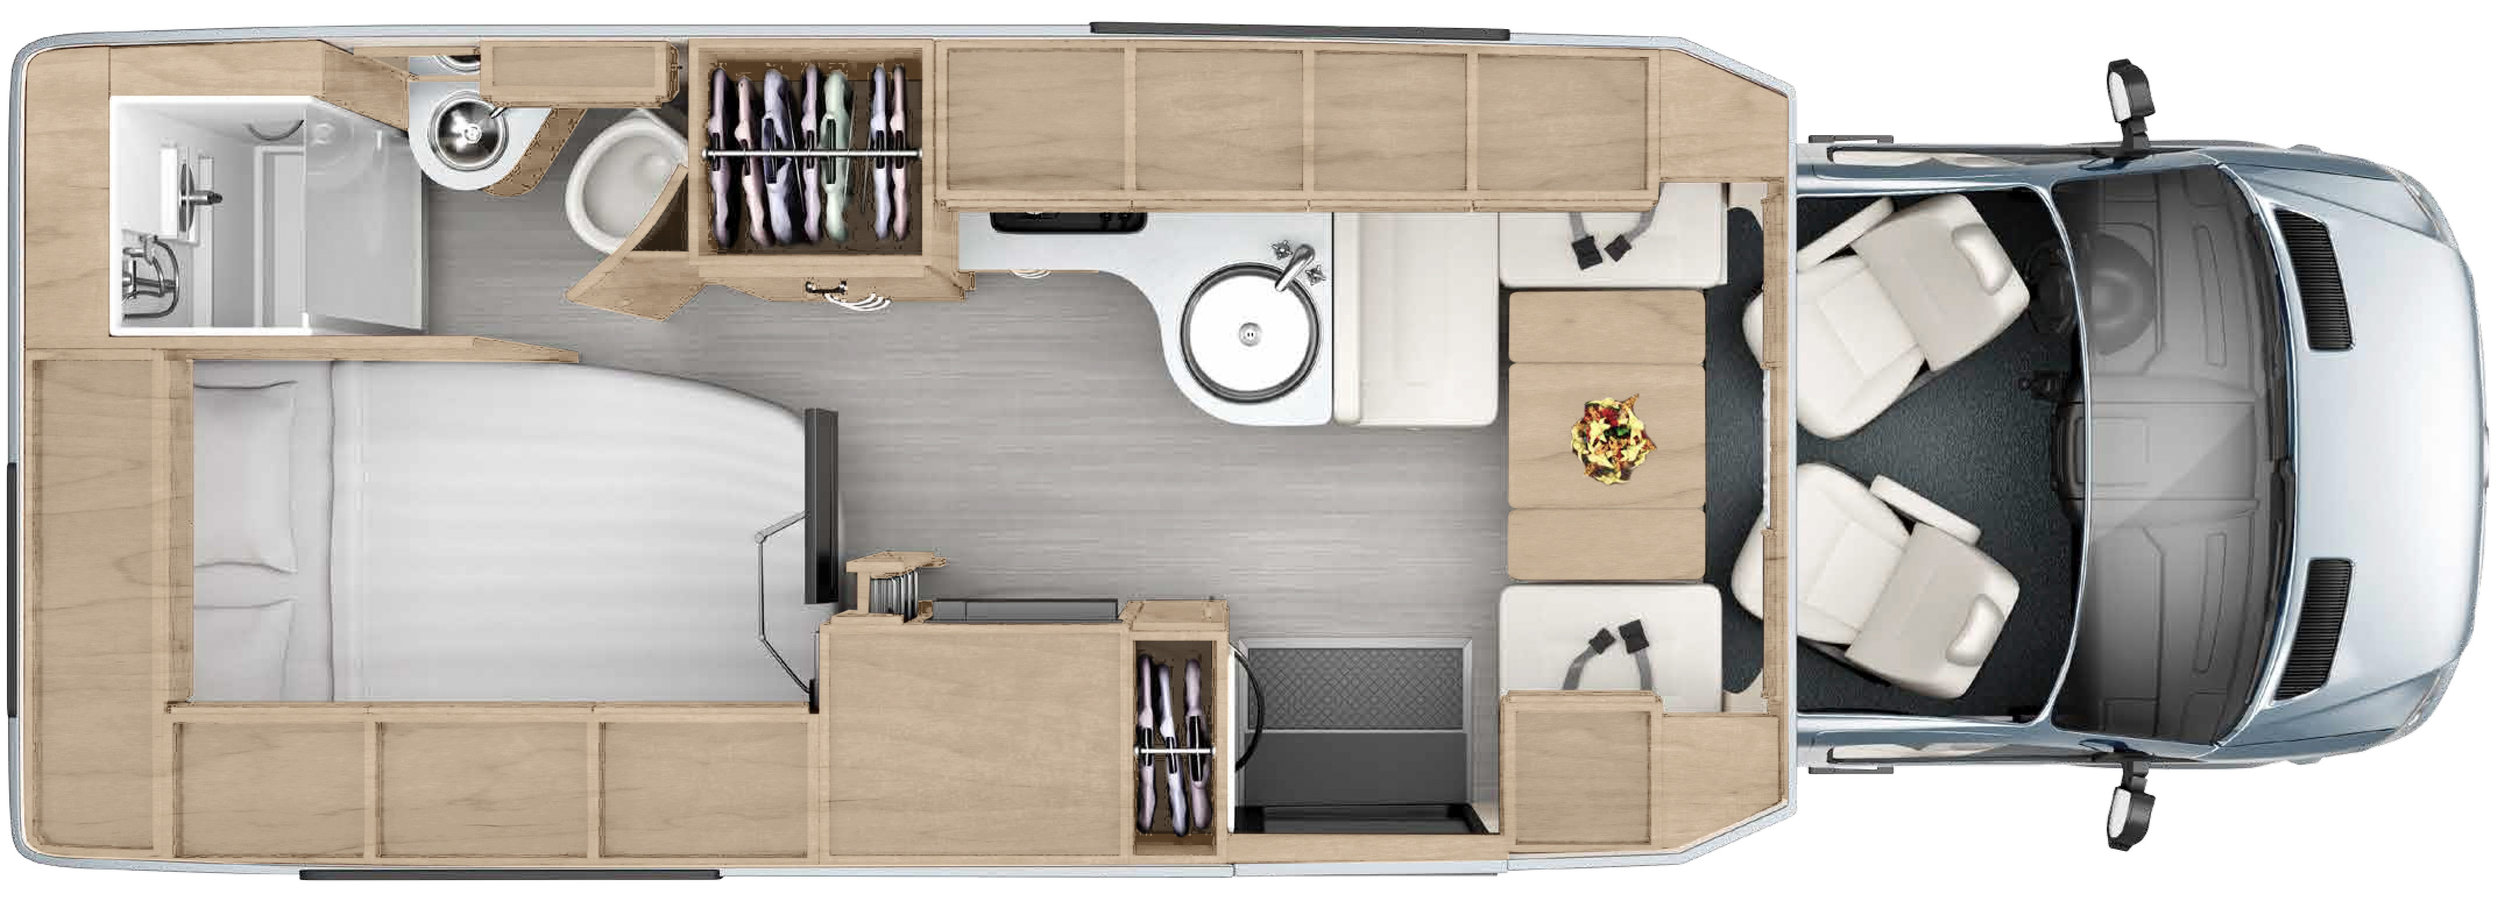 Serenity floor plan. The rear sofa area converts to the comfy private bedroom.